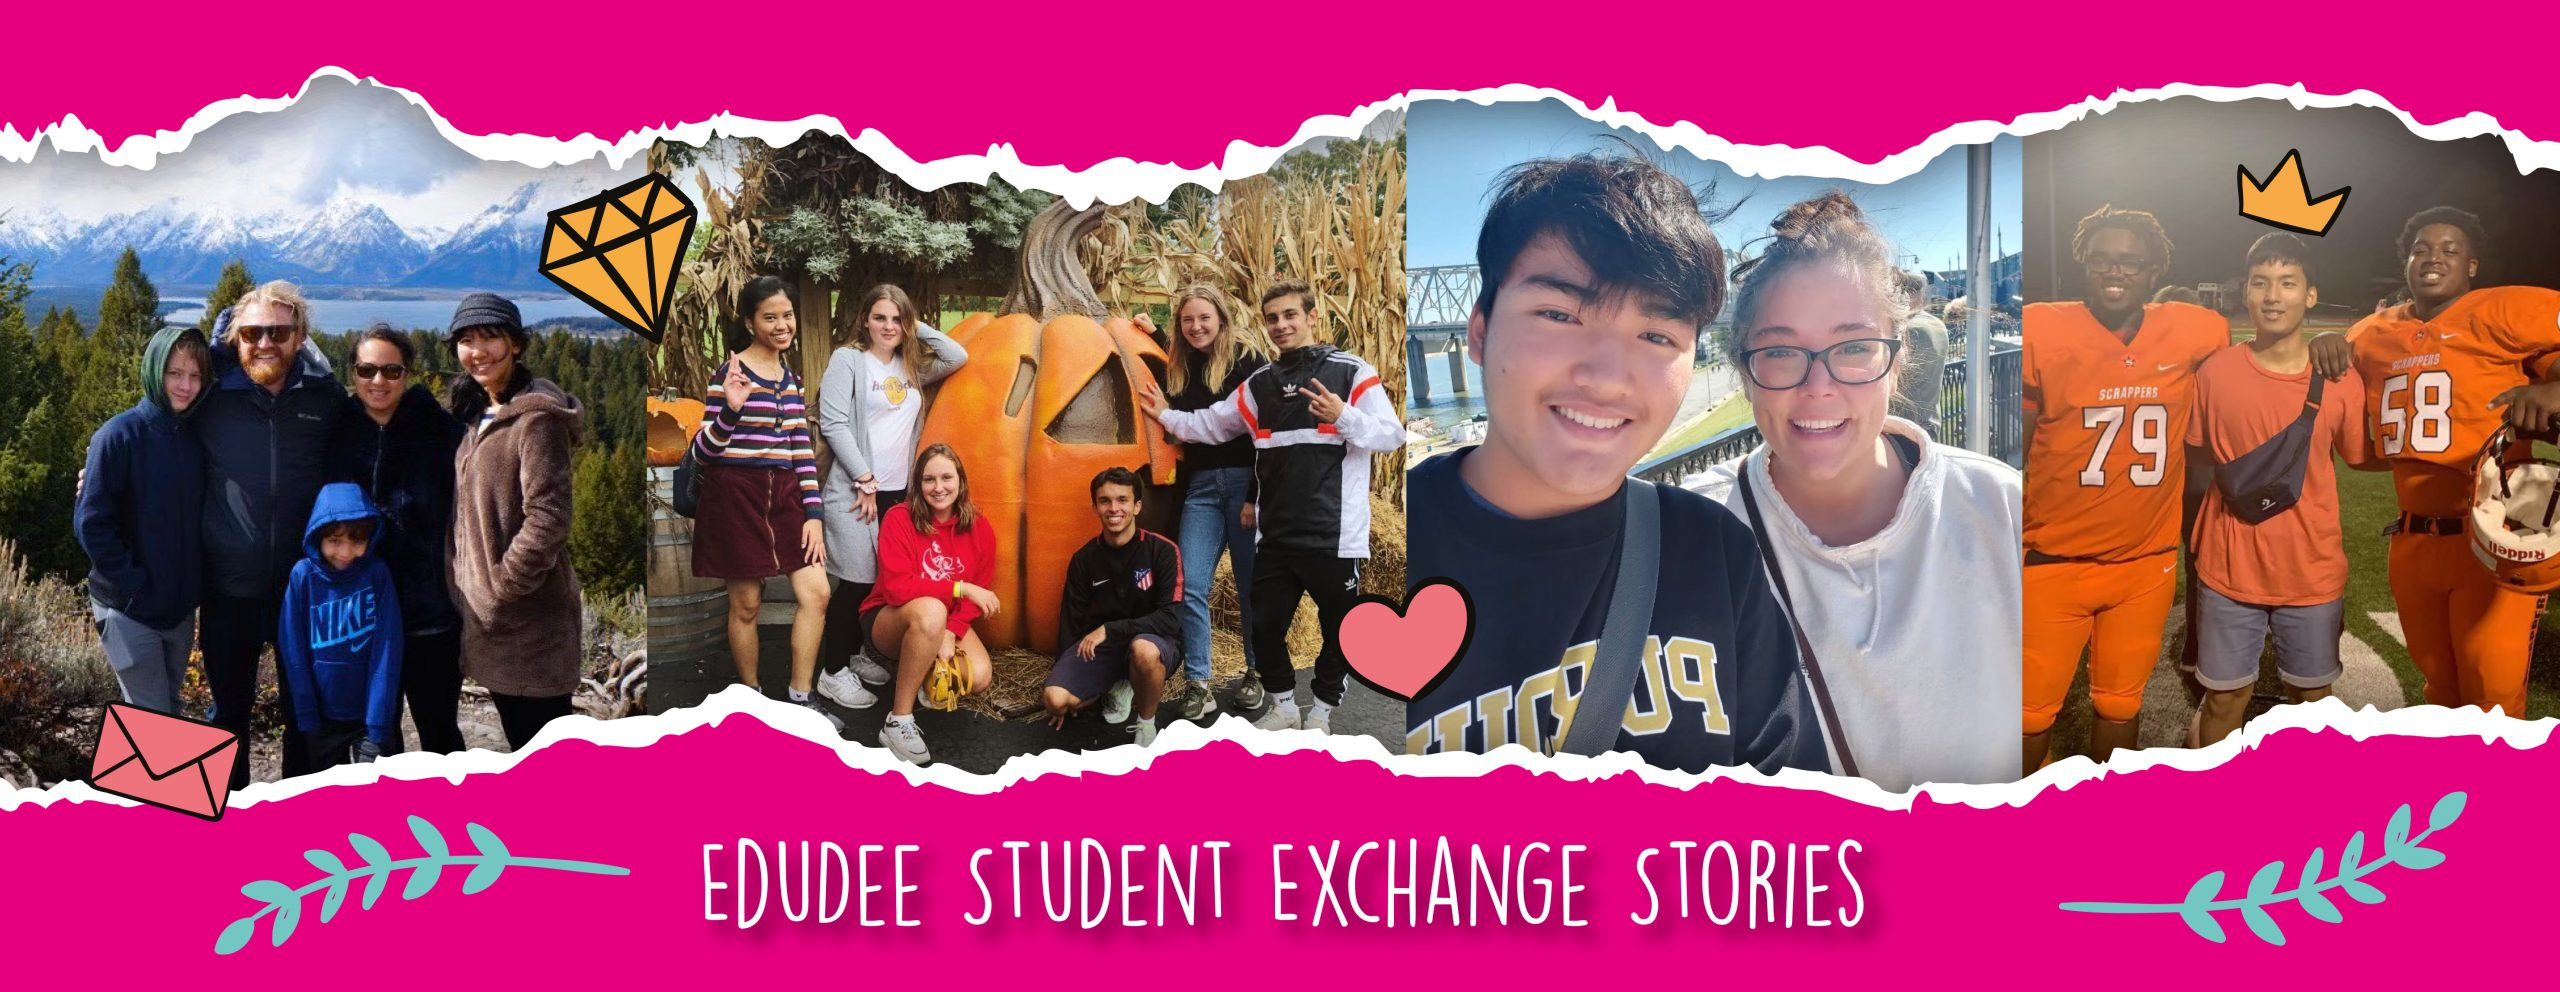 EduDee Exchange Stories-2